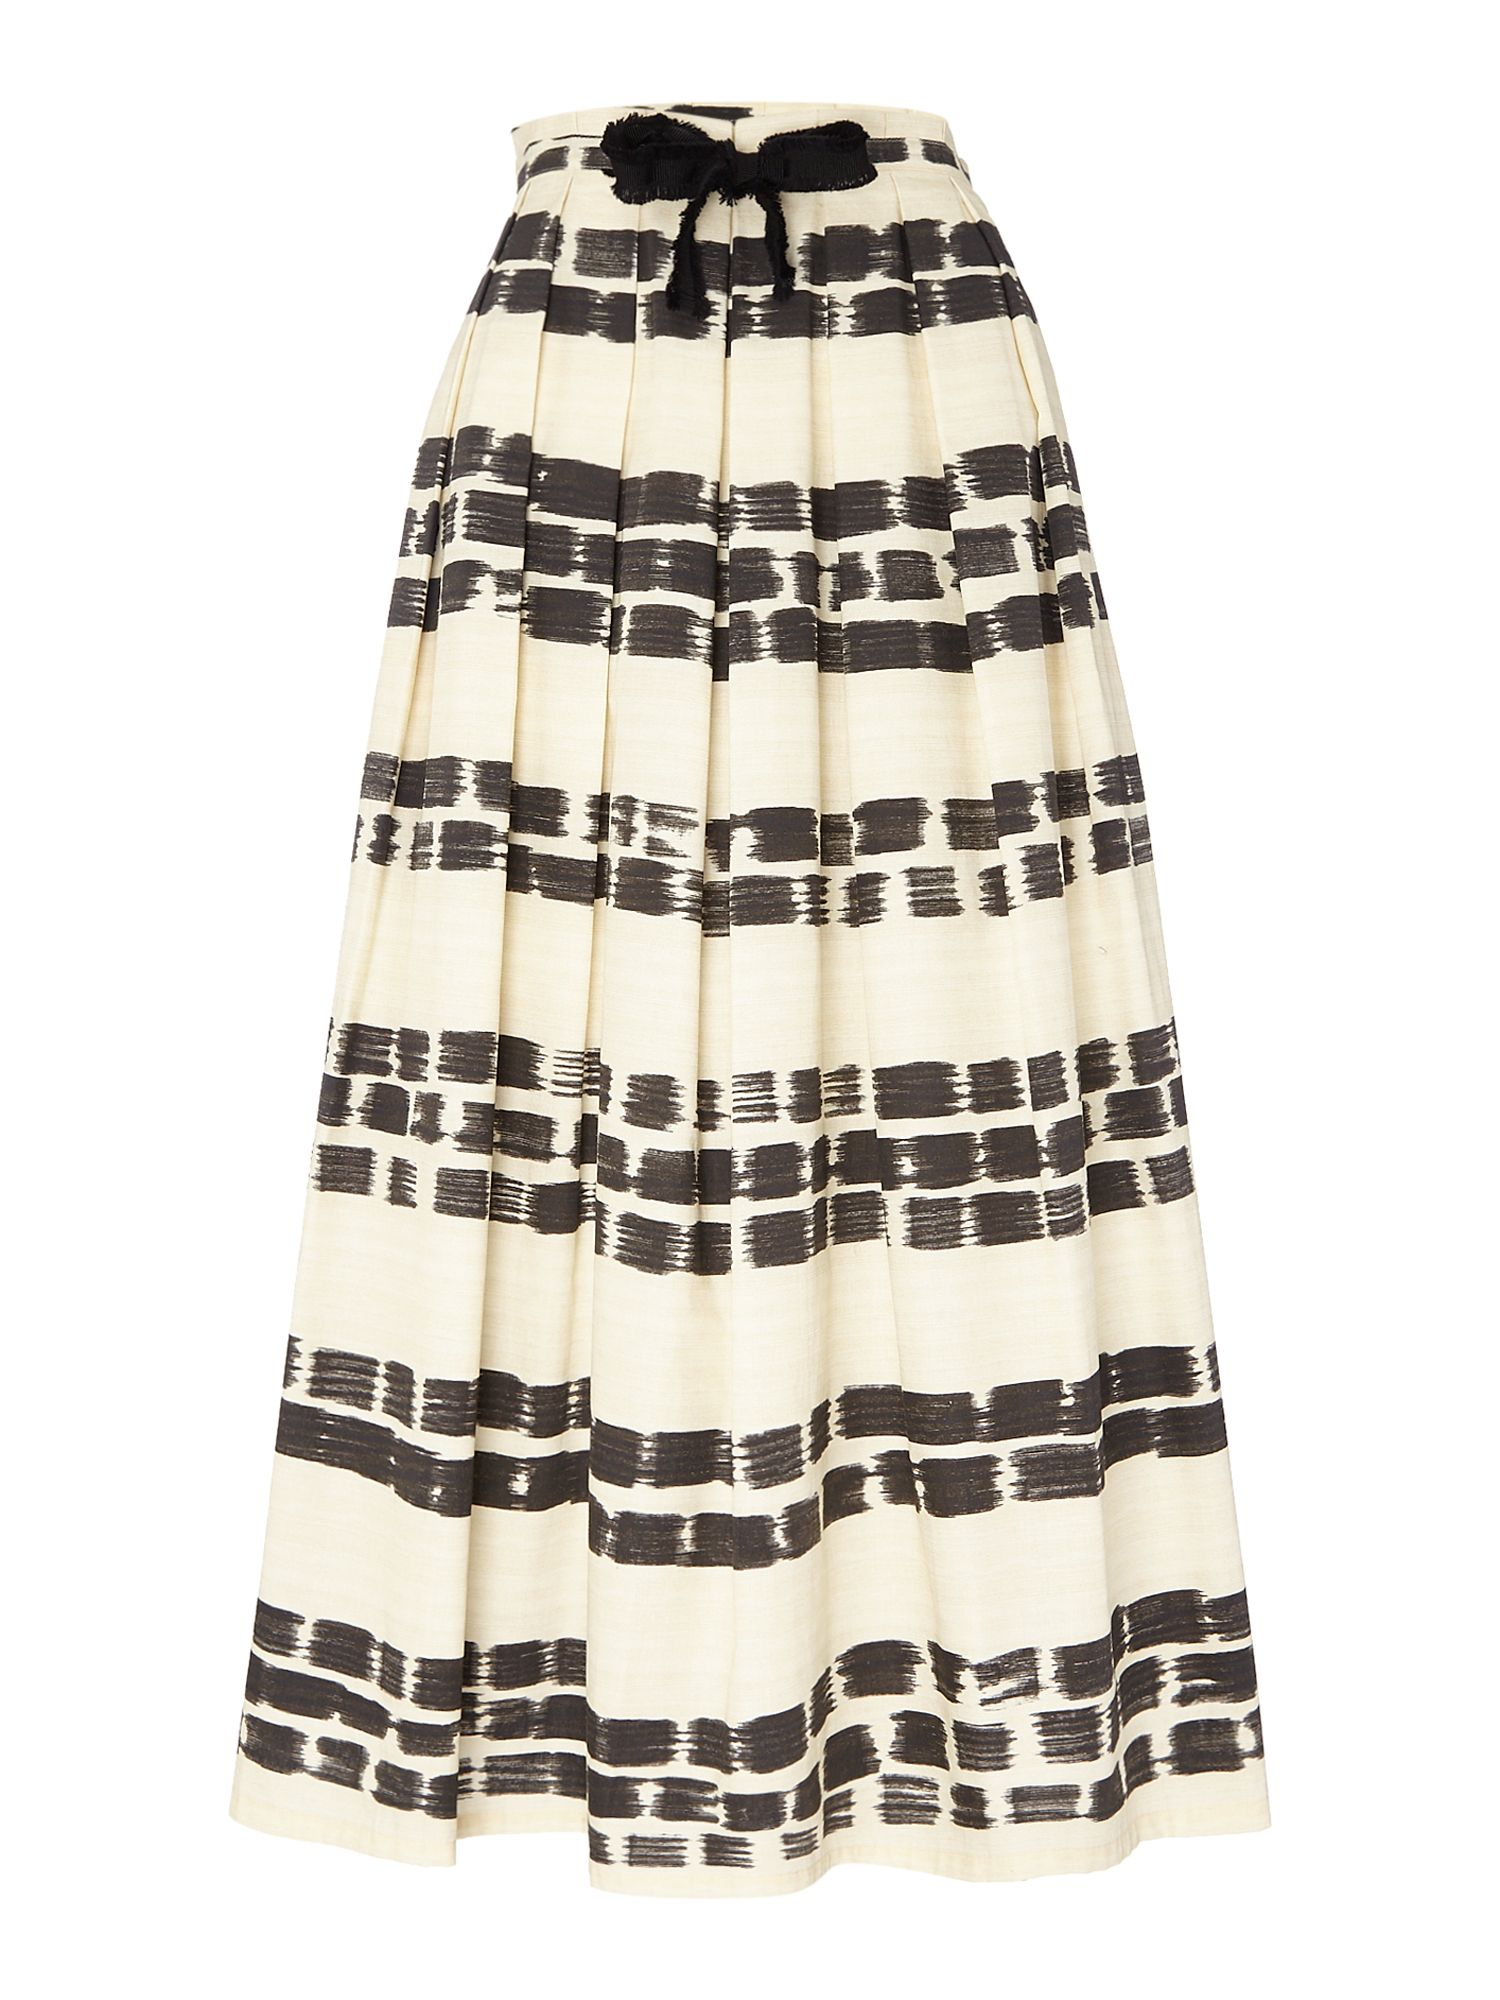 Max Mara Studio GIOTTO midi striped skirt with belt tie, White